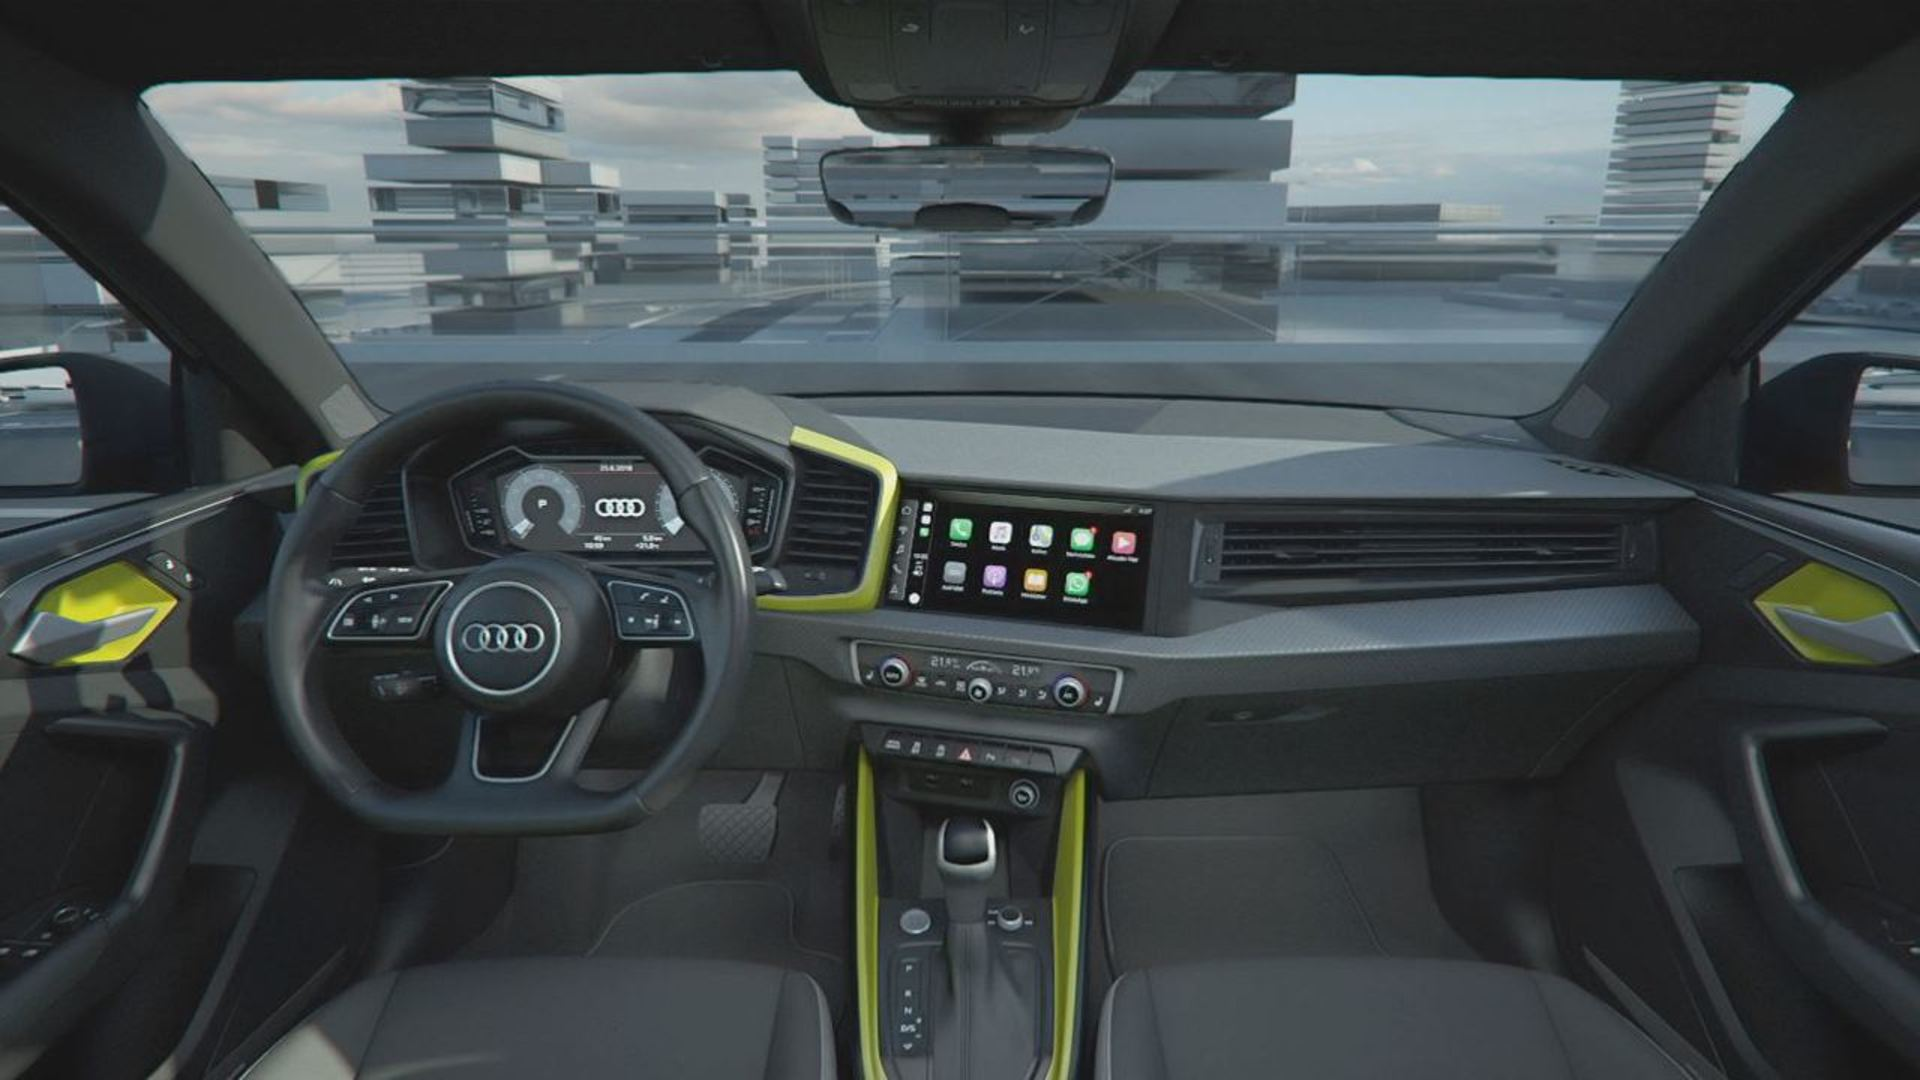 Audi A1 Sportback Infotainment /Connectivity + LED- Scheinwerfer (Animation)